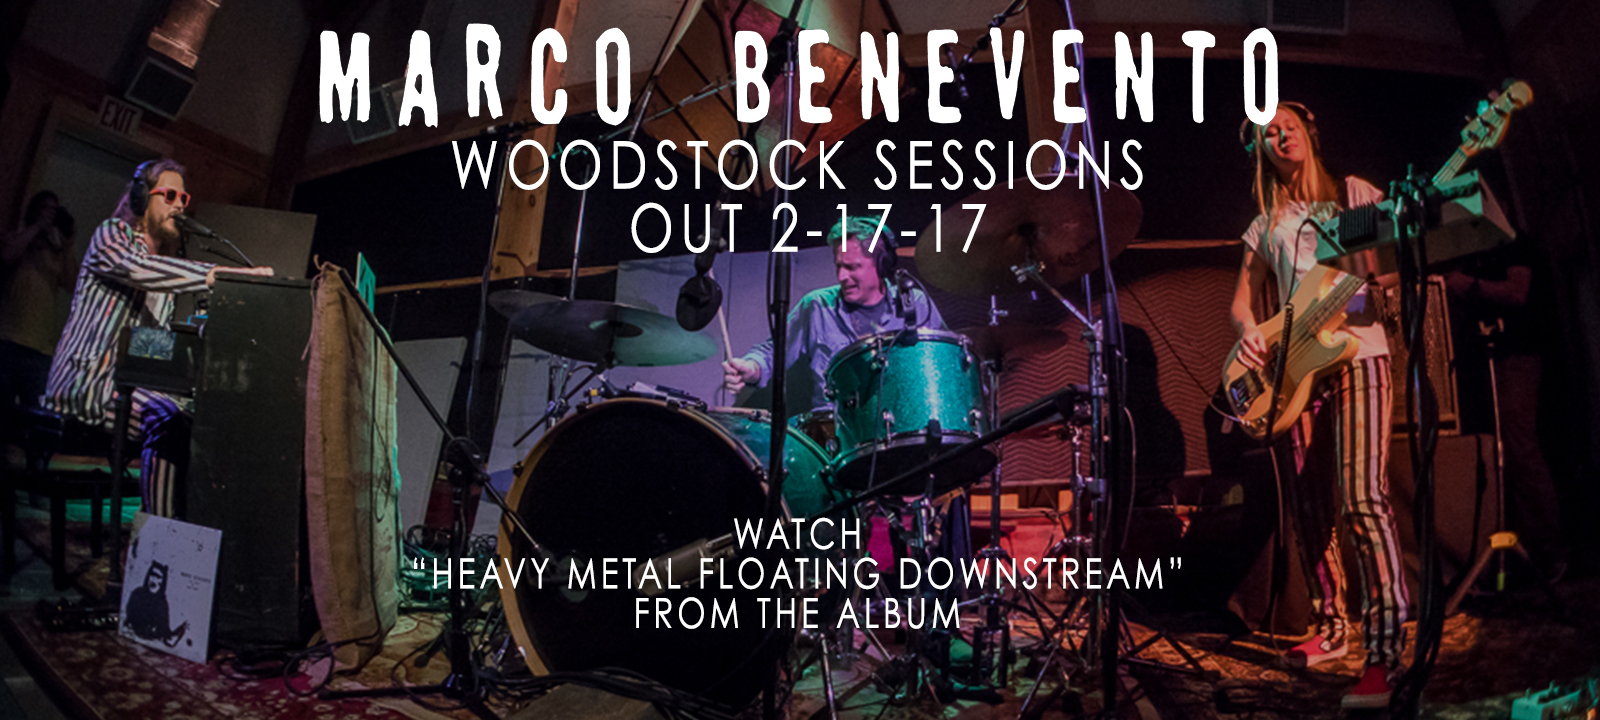 Marco Benevento -- Heavy Metal Floating Downstream -- Woodstock Sessions